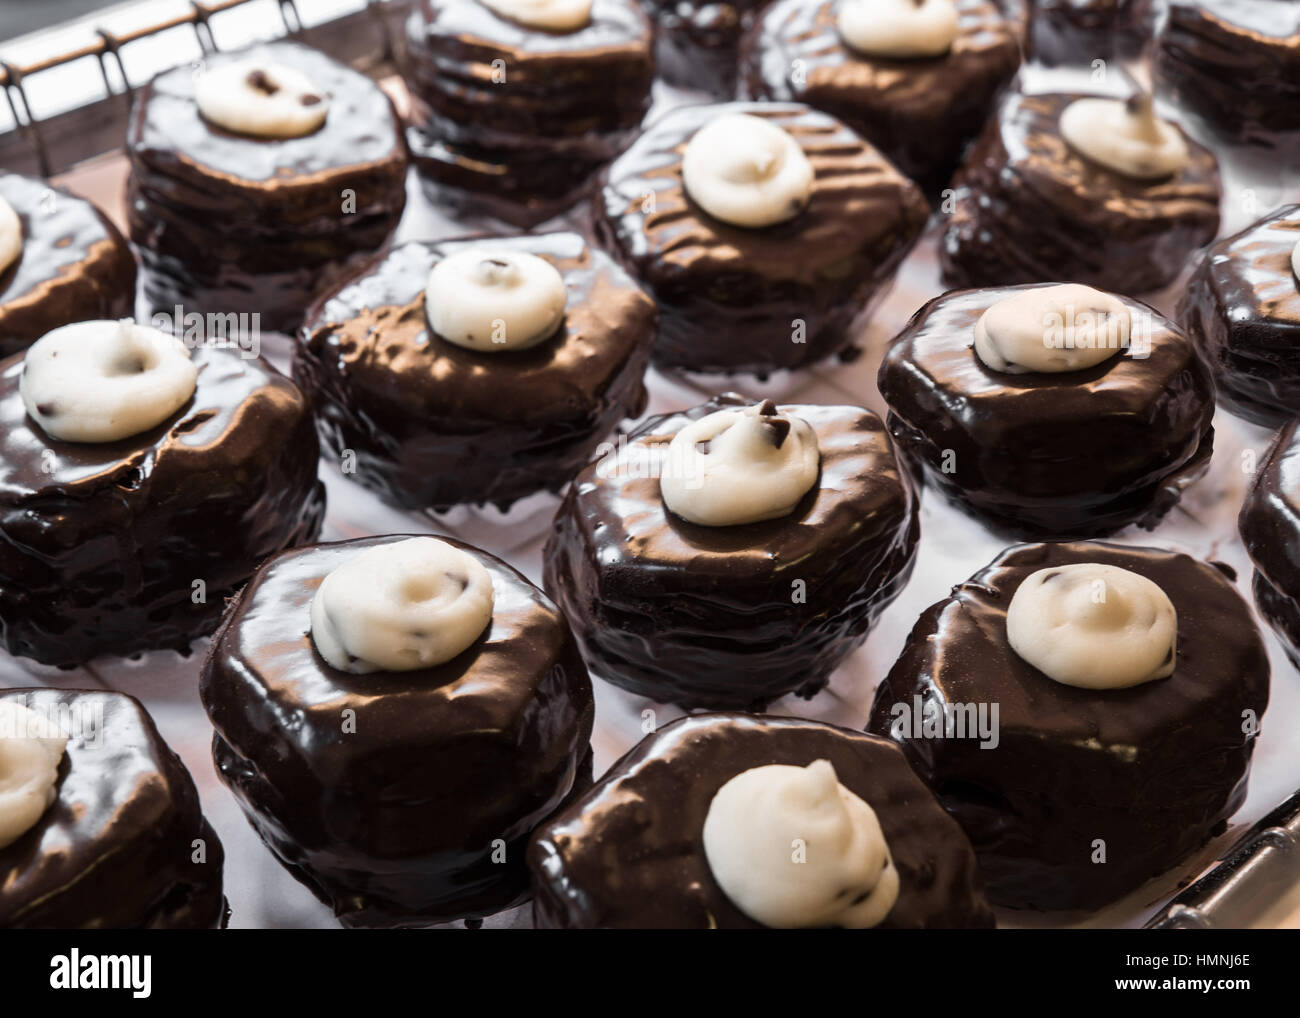 Delicious bakery display of cream filled chocolate frosted donuts - Stock Image